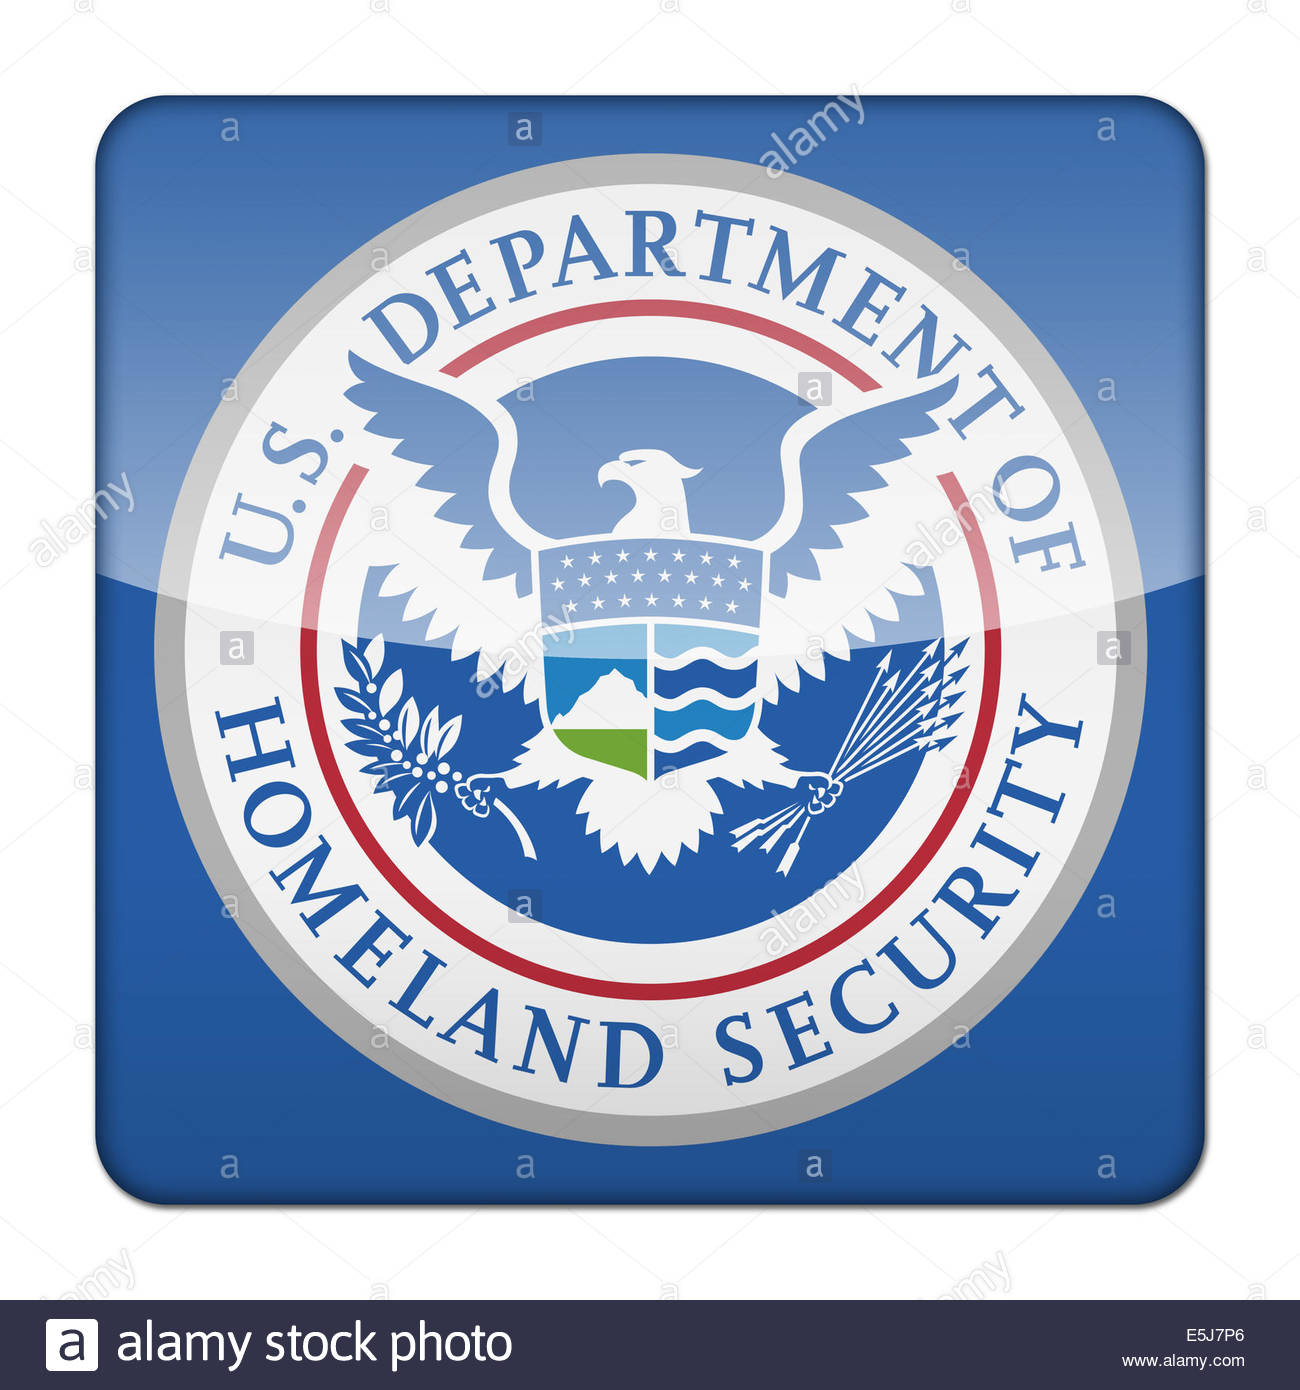 United states department of homeland security logo icon isolated united states department of homeland security logo icon isolated app button buycottarizona